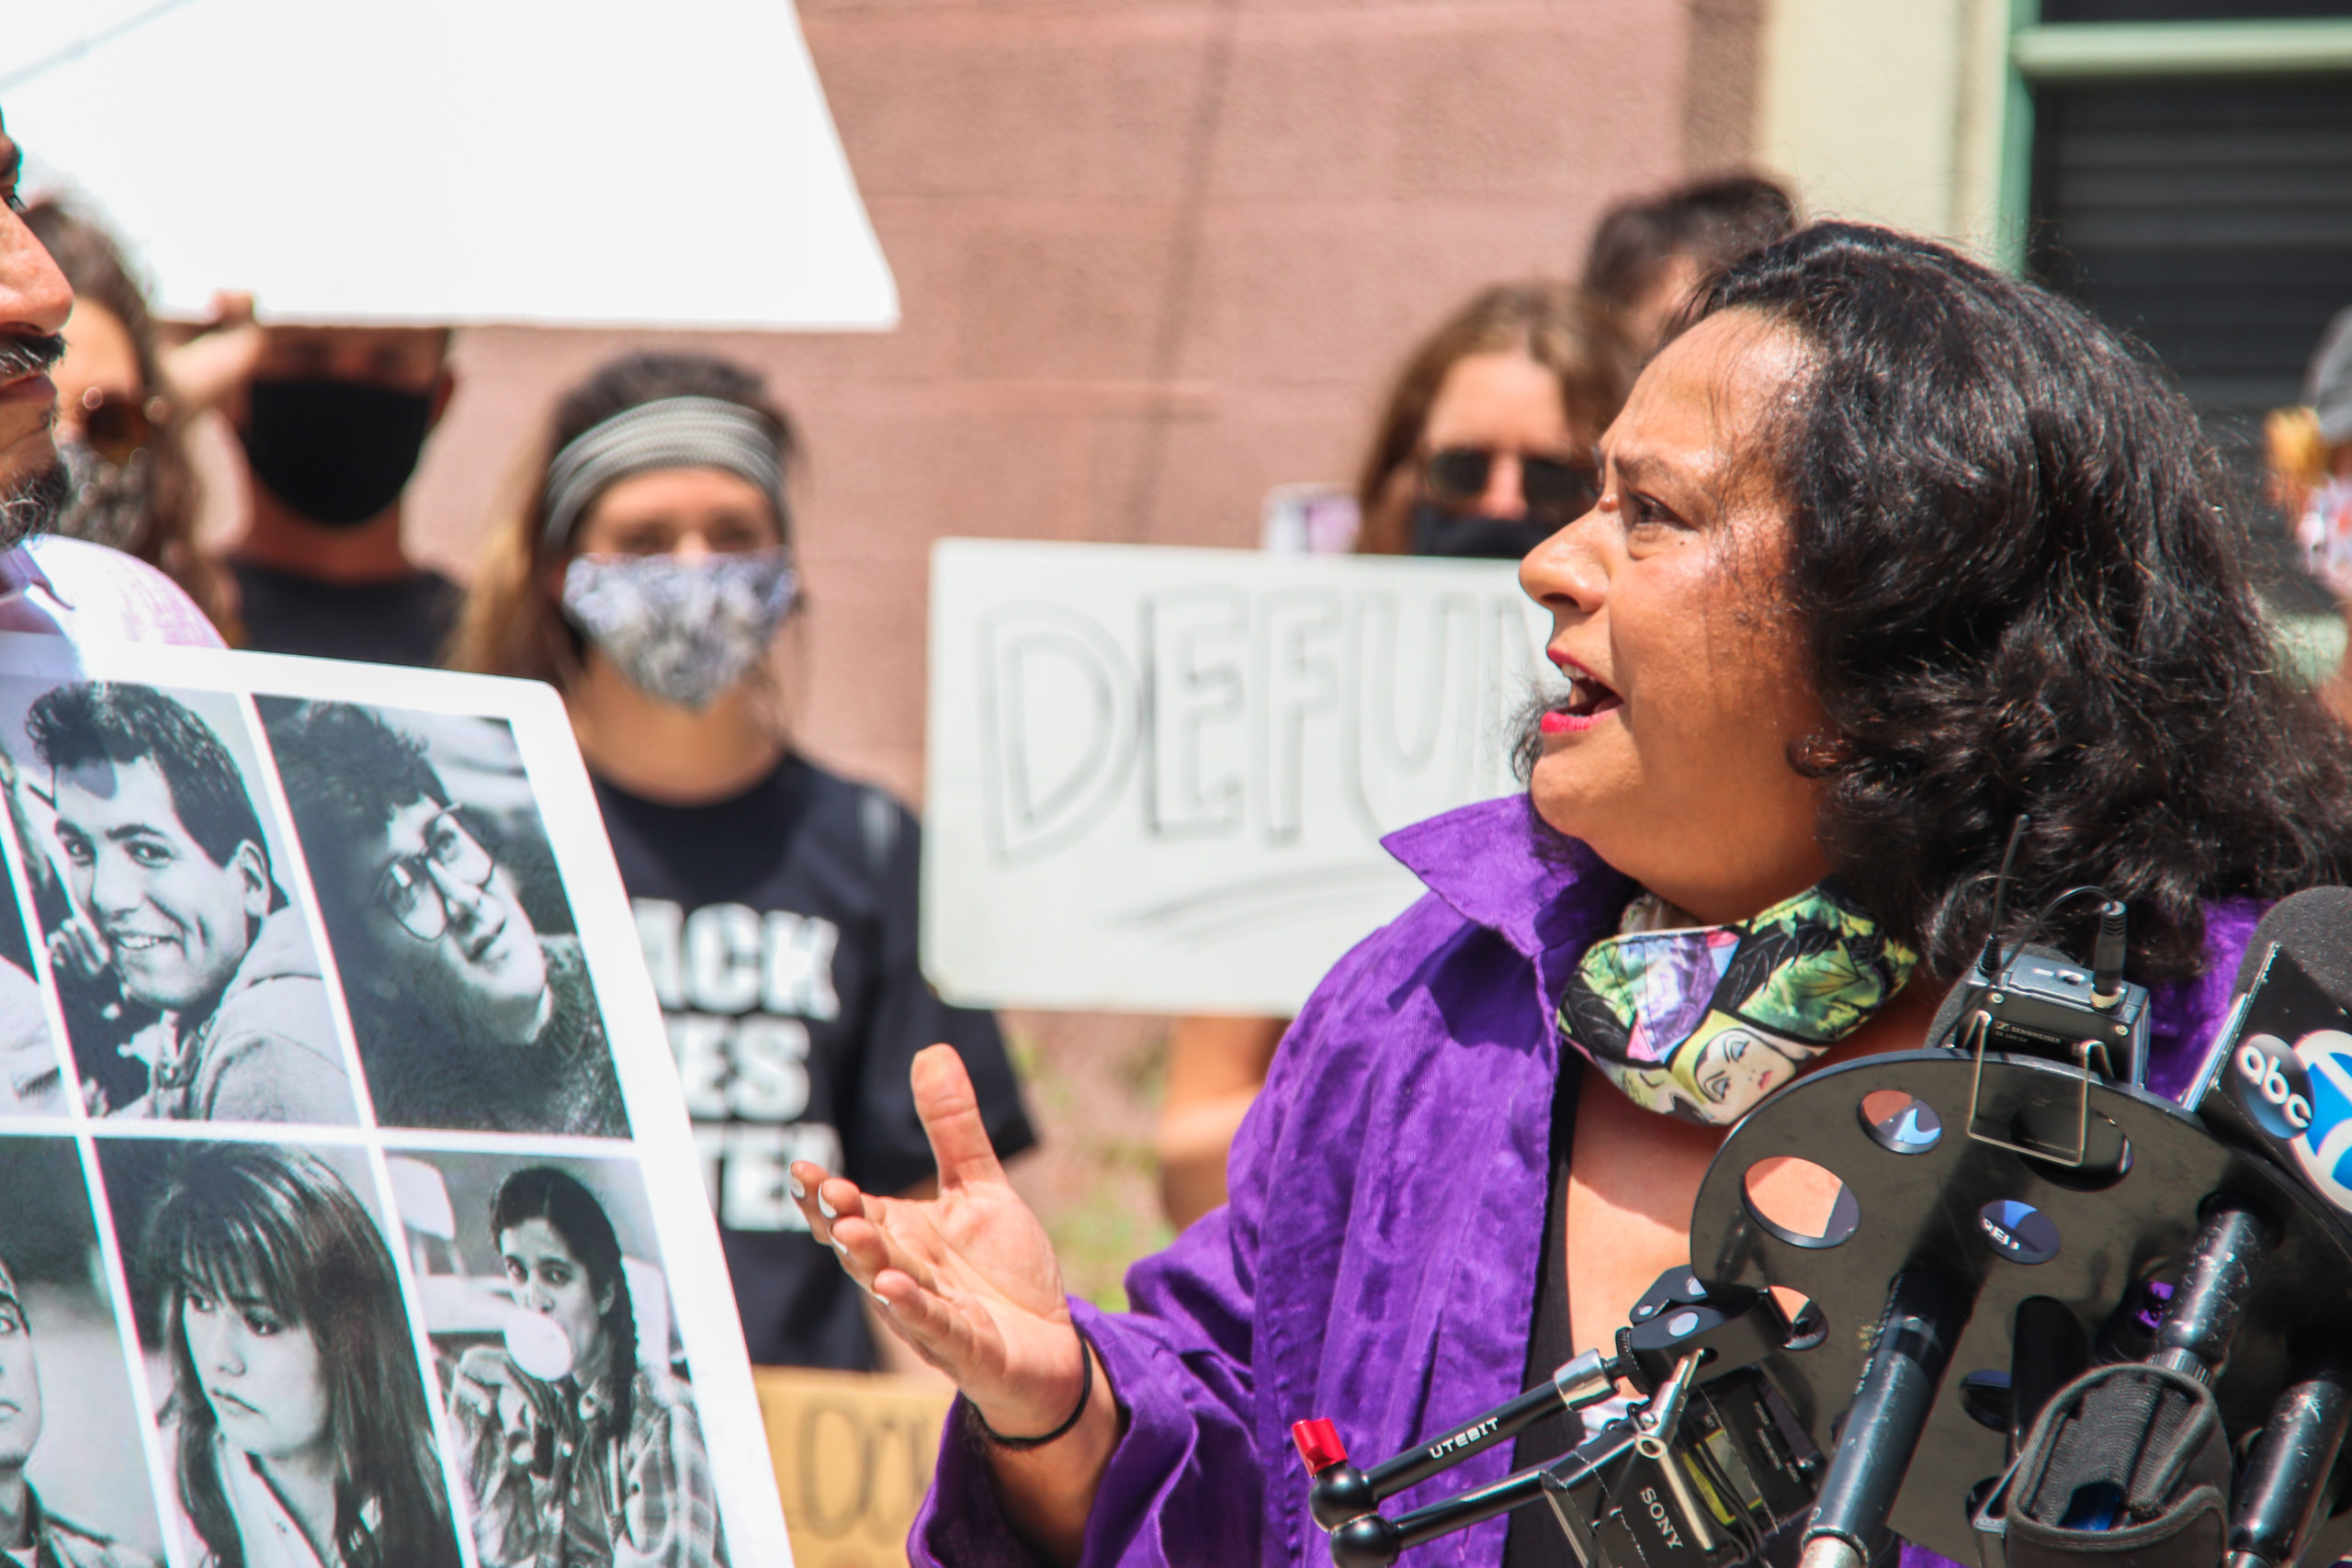 south-pasadena-news-06-24-2020-vanessa-marquez-police-shooting-wrongful-death-lawsuit-city-hall-32